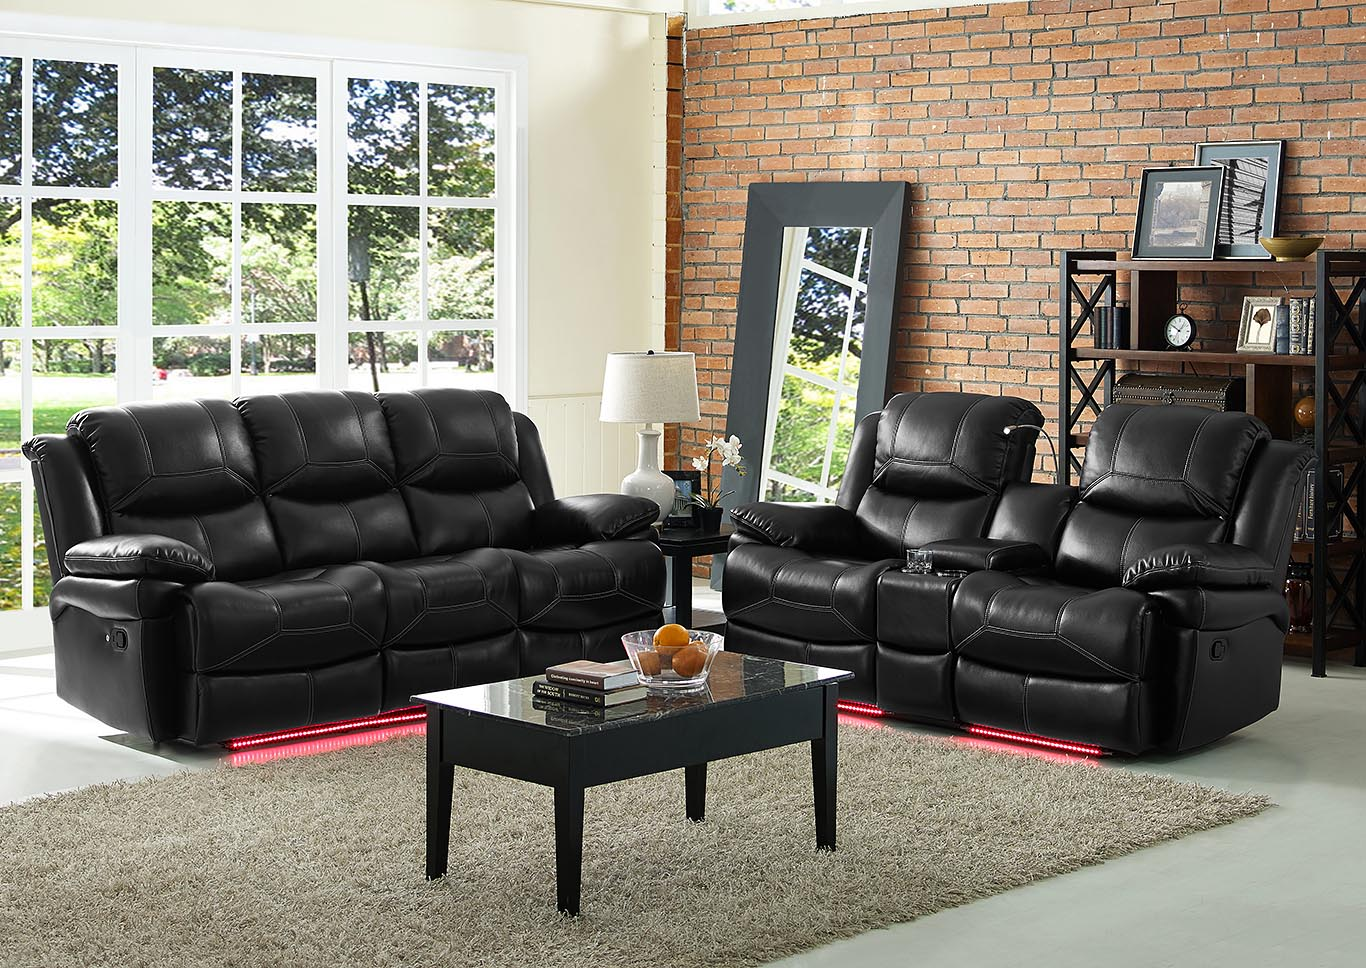 FLYNN BLACK CONSOLE LOVESEAT W/READING LIGHT AND POWER,New Classic